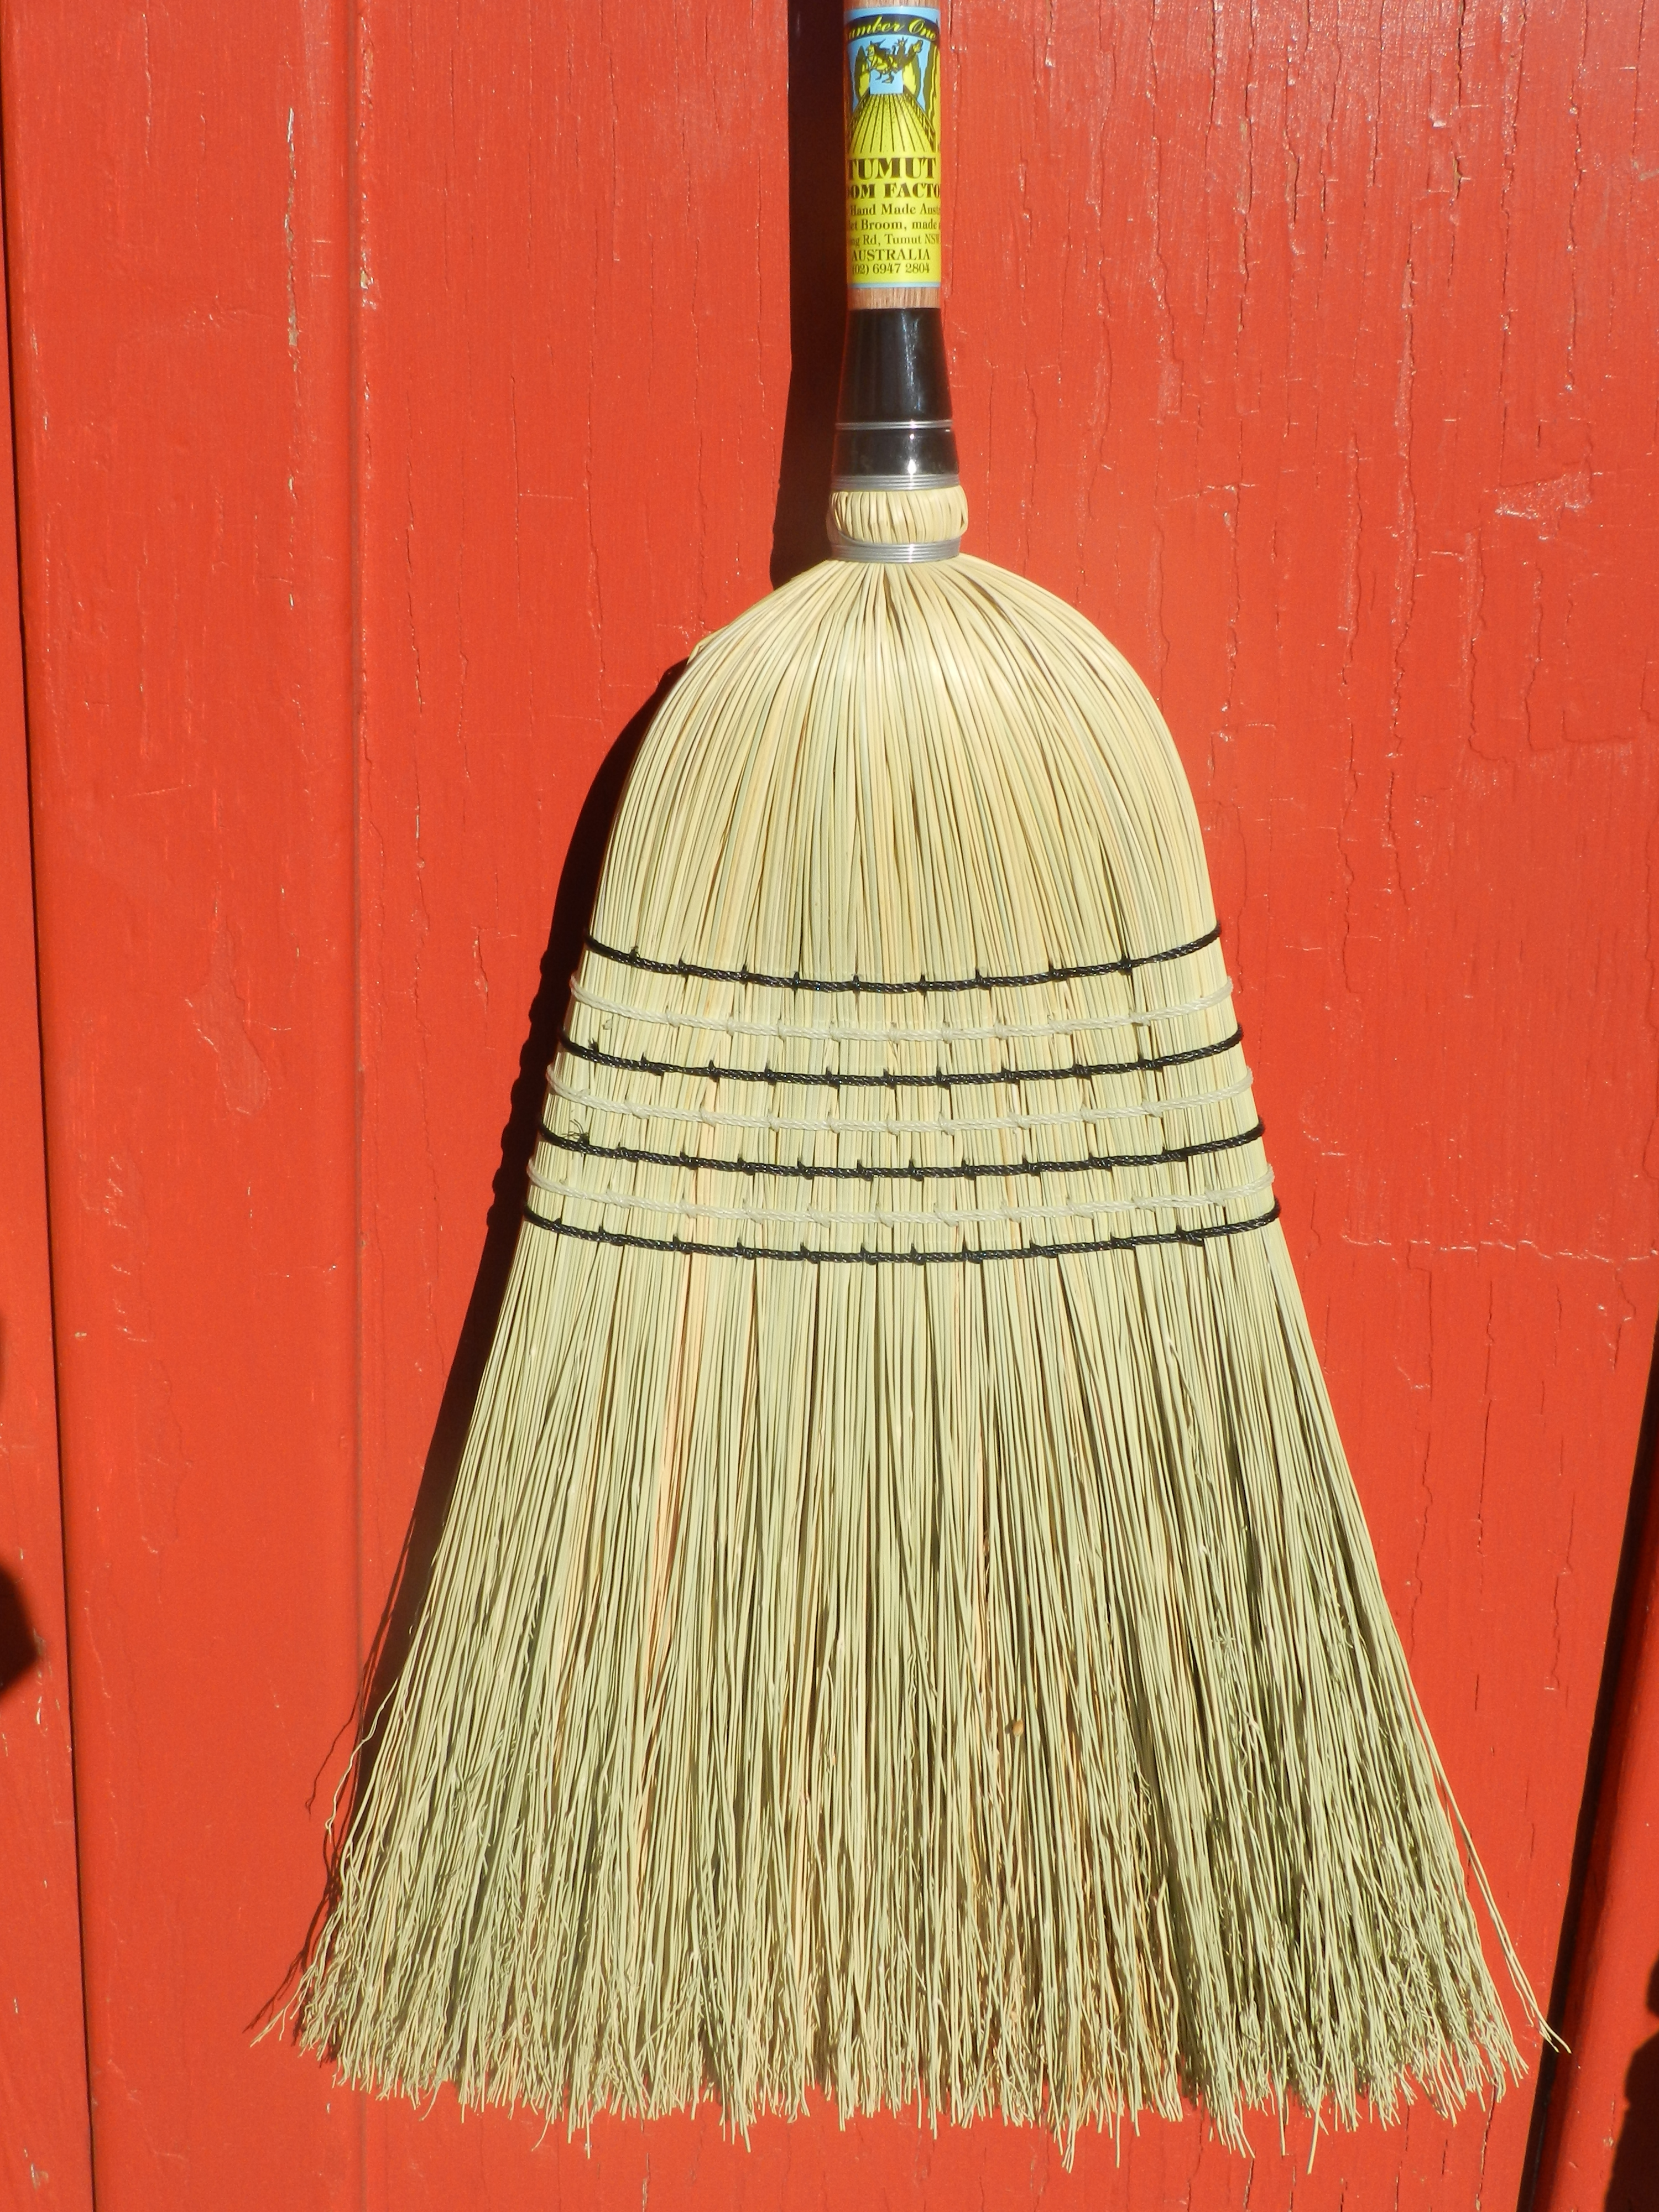 Our Brooms Tumut Broom Factory